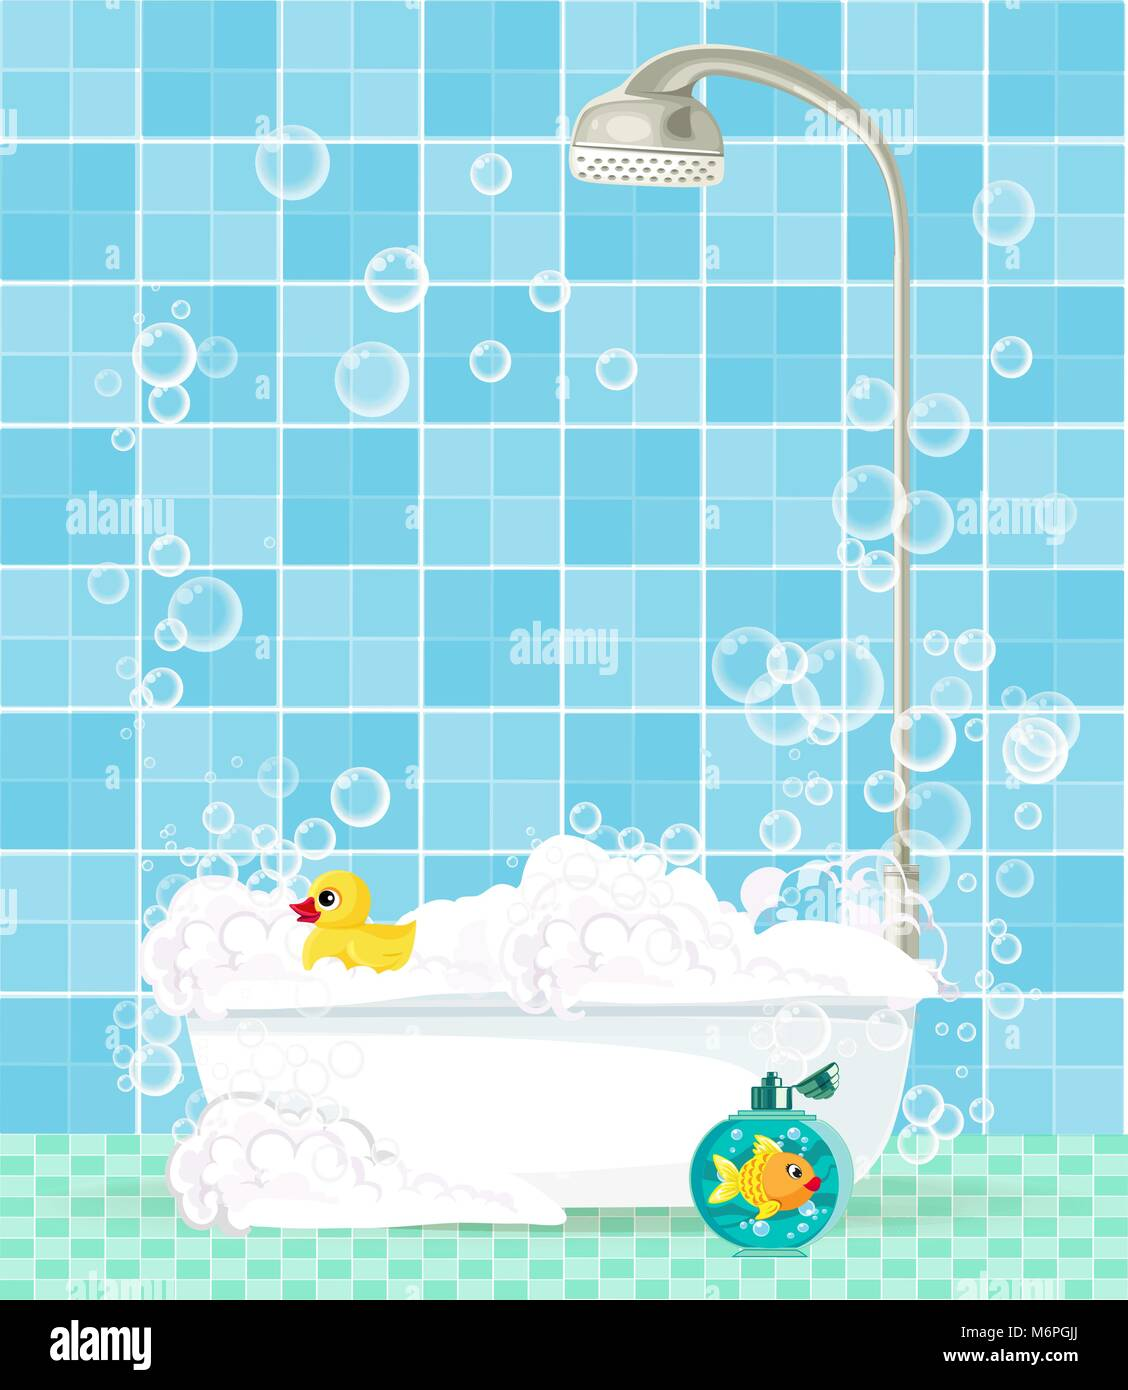 Cute Cartoon Bathroom Interior With Bathtub Full Of Foam Soap Bubbles Bottle Shampoo Rubber Duck On Blue Tiled Background Comfortable Equipmen